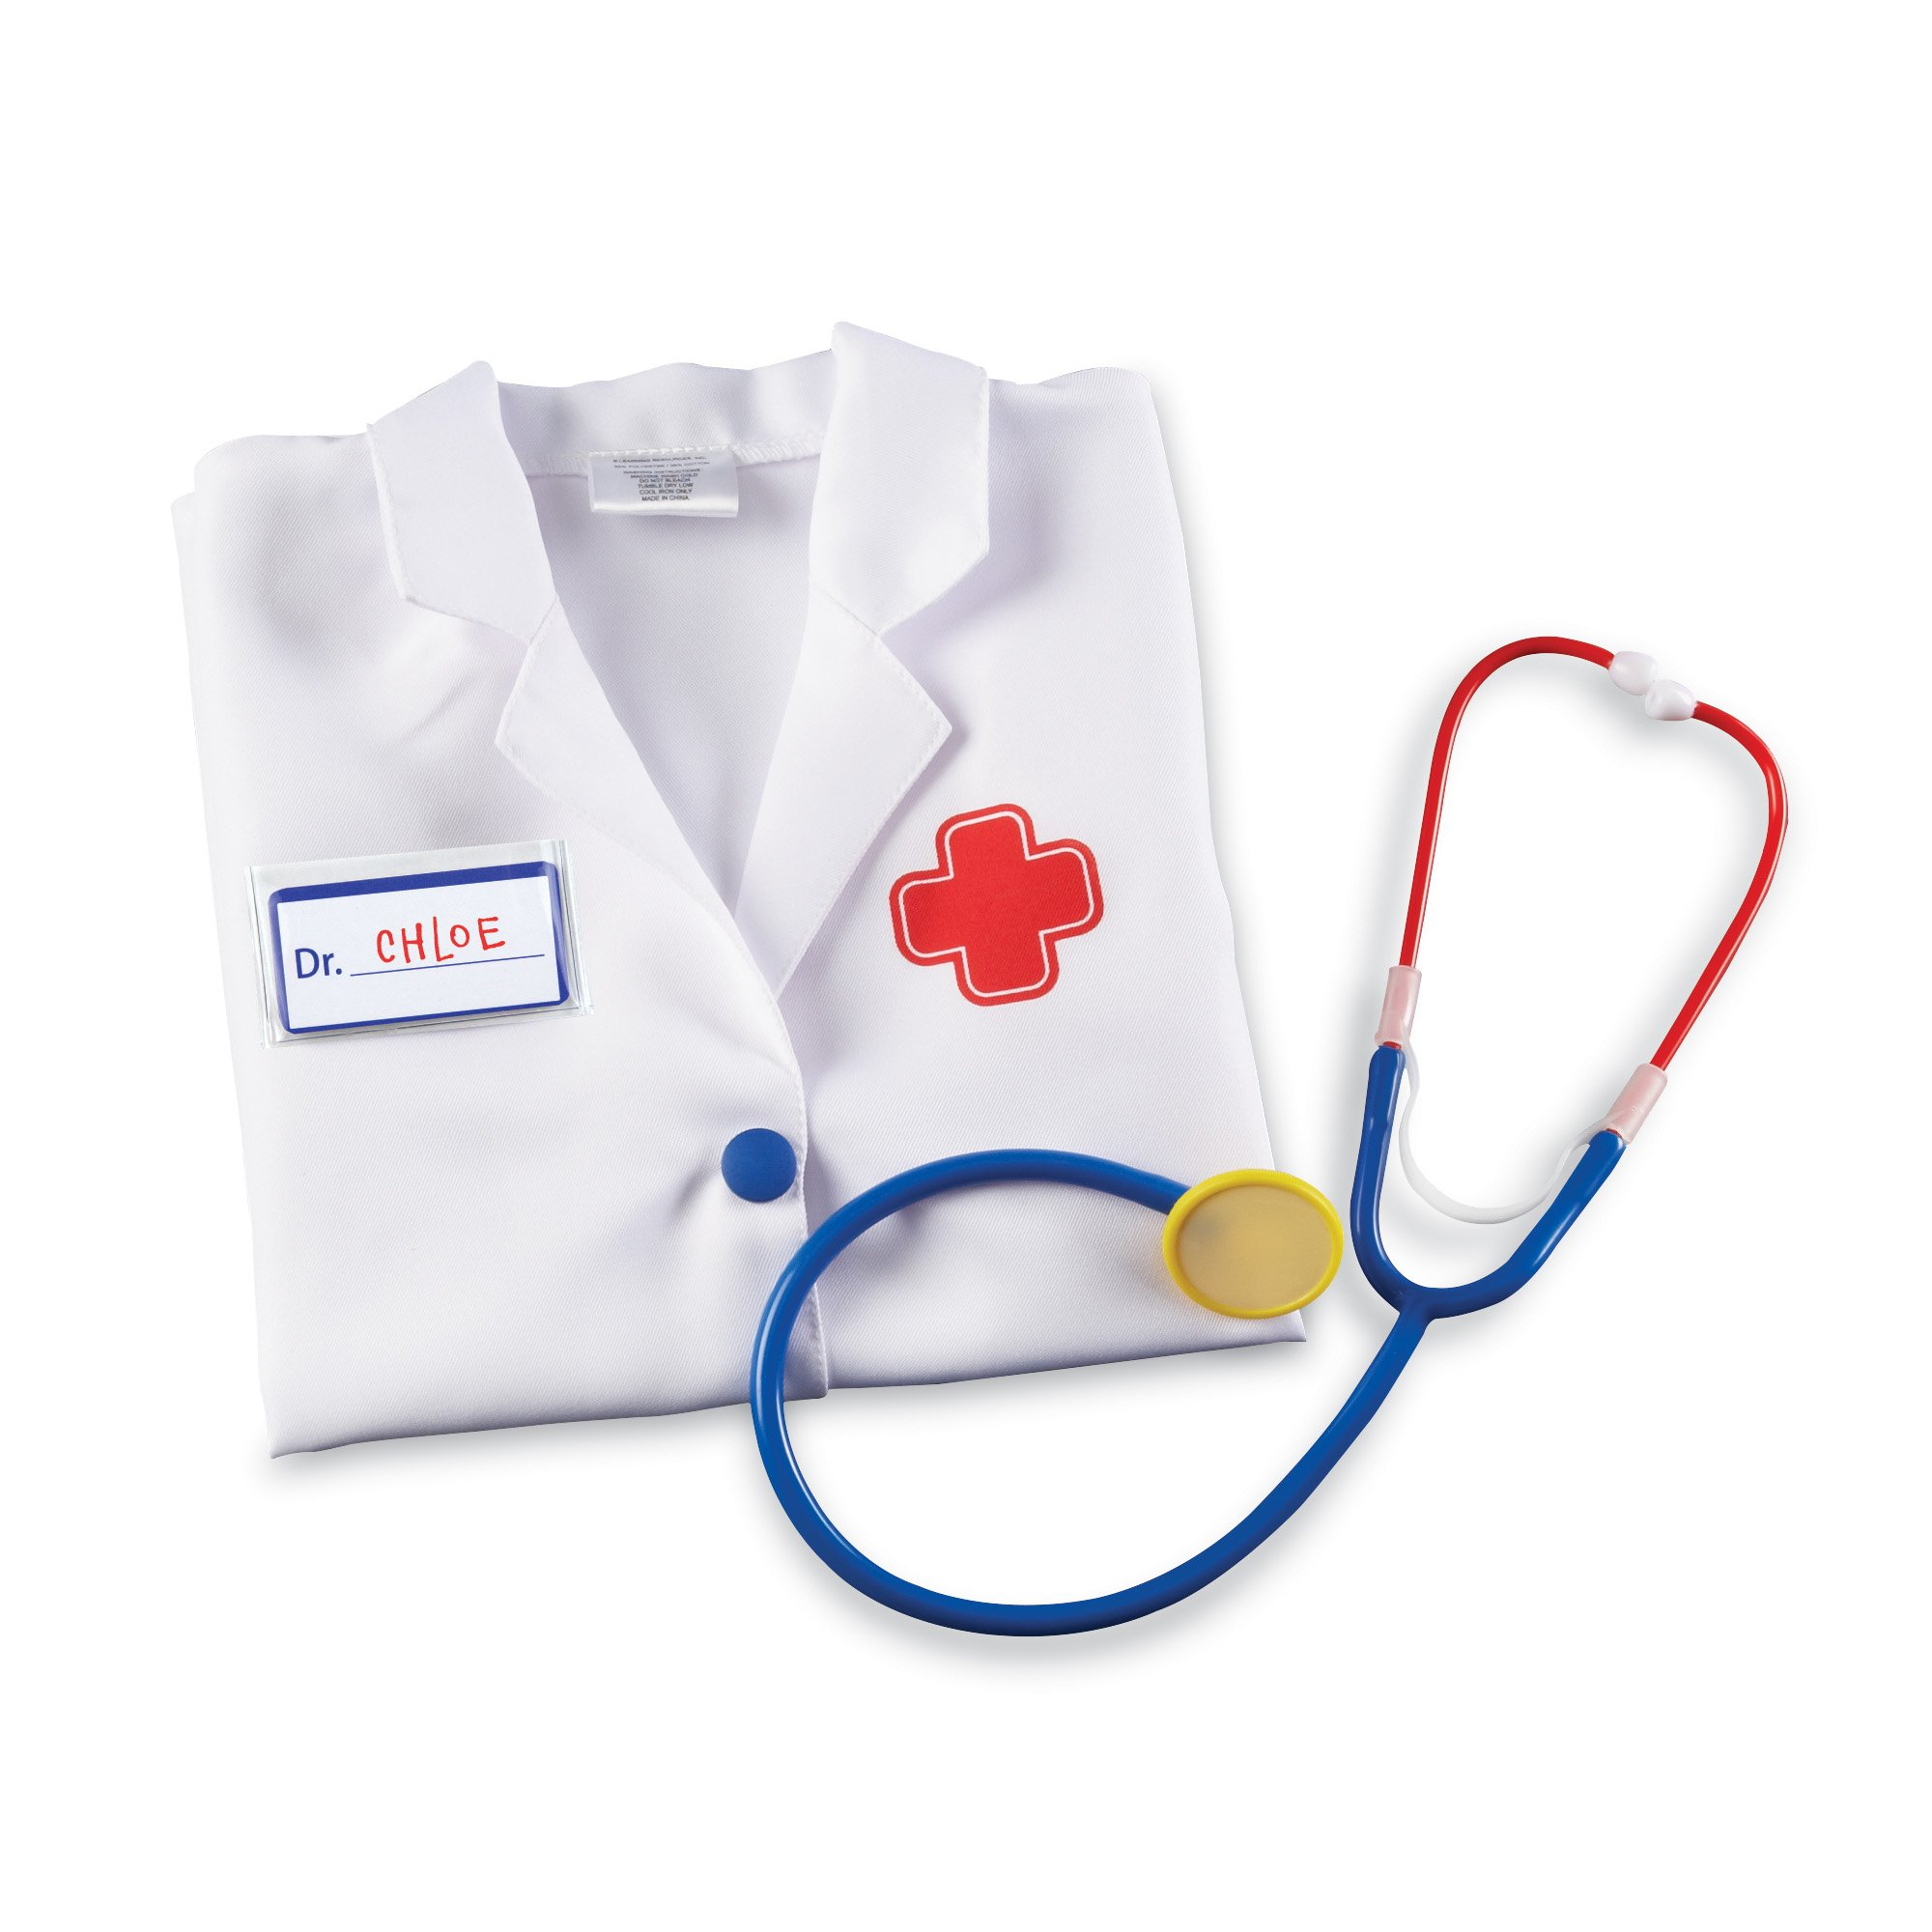 Learning Resources Doctor Play Set with Stethoscope, Pretend Play, Imagination Play, 3 Pieces, Ages 3+ by Learning Resources